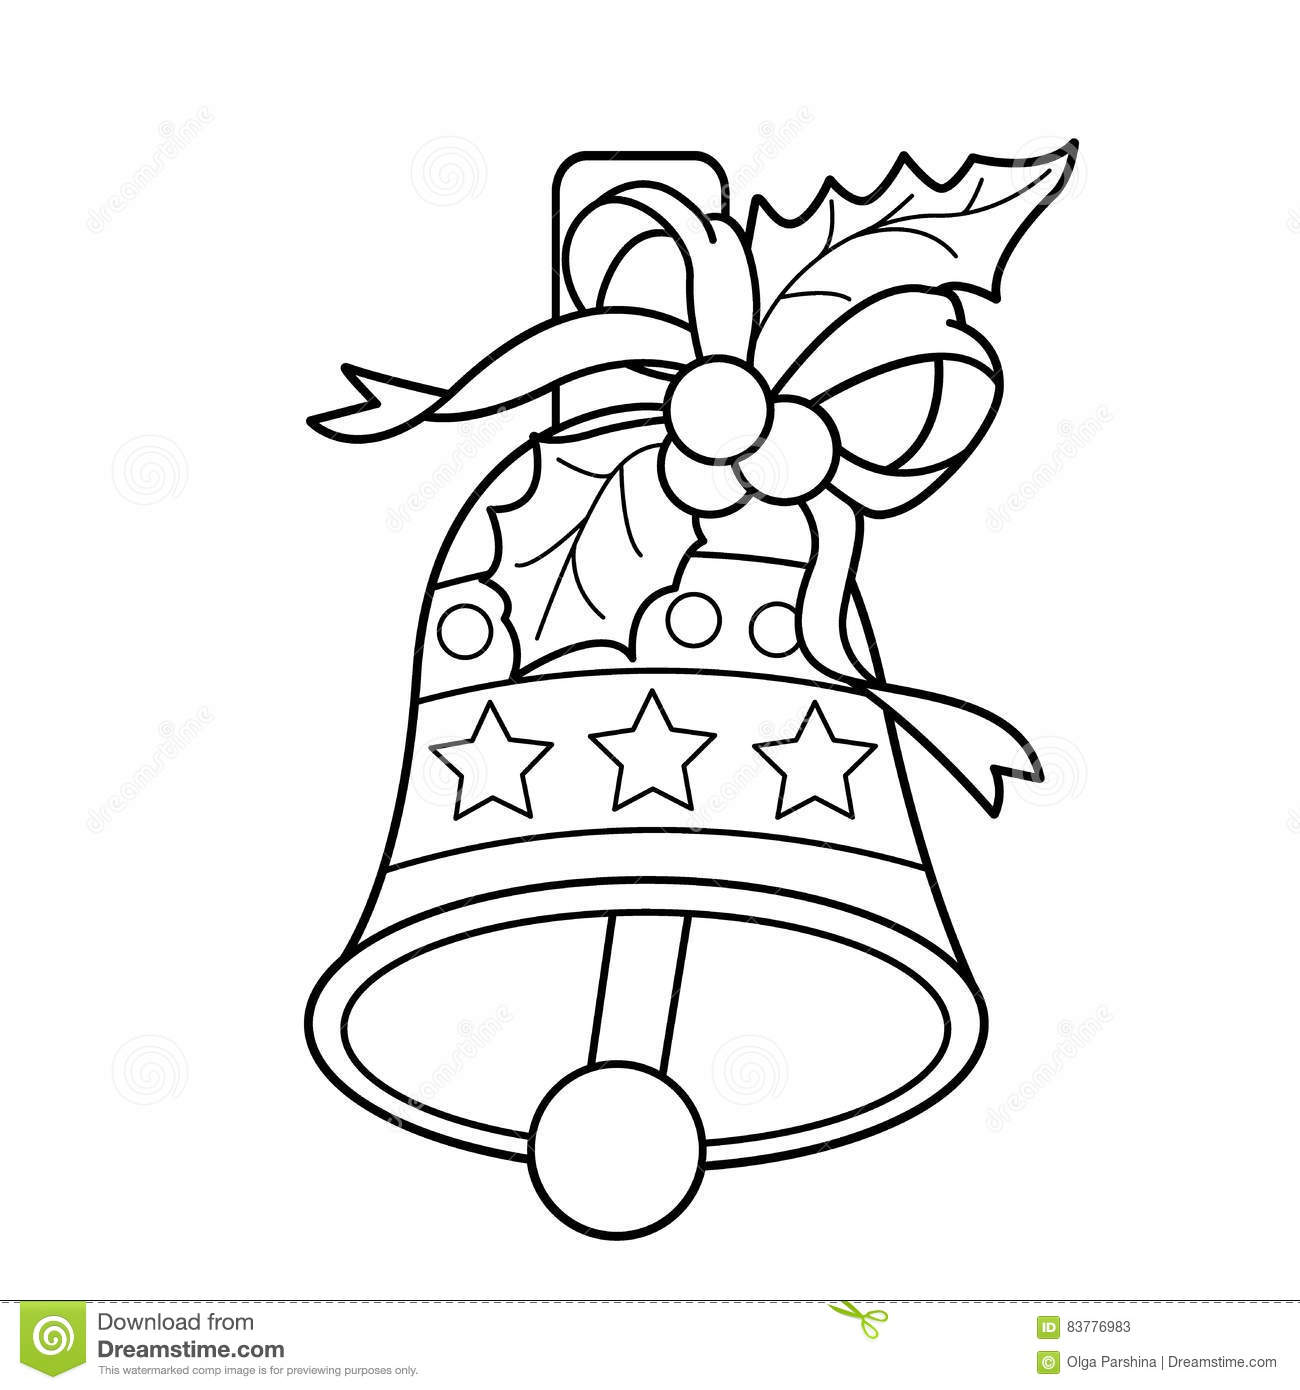 Download Coloring Page Outline Of Christmas Bell New Year Book For